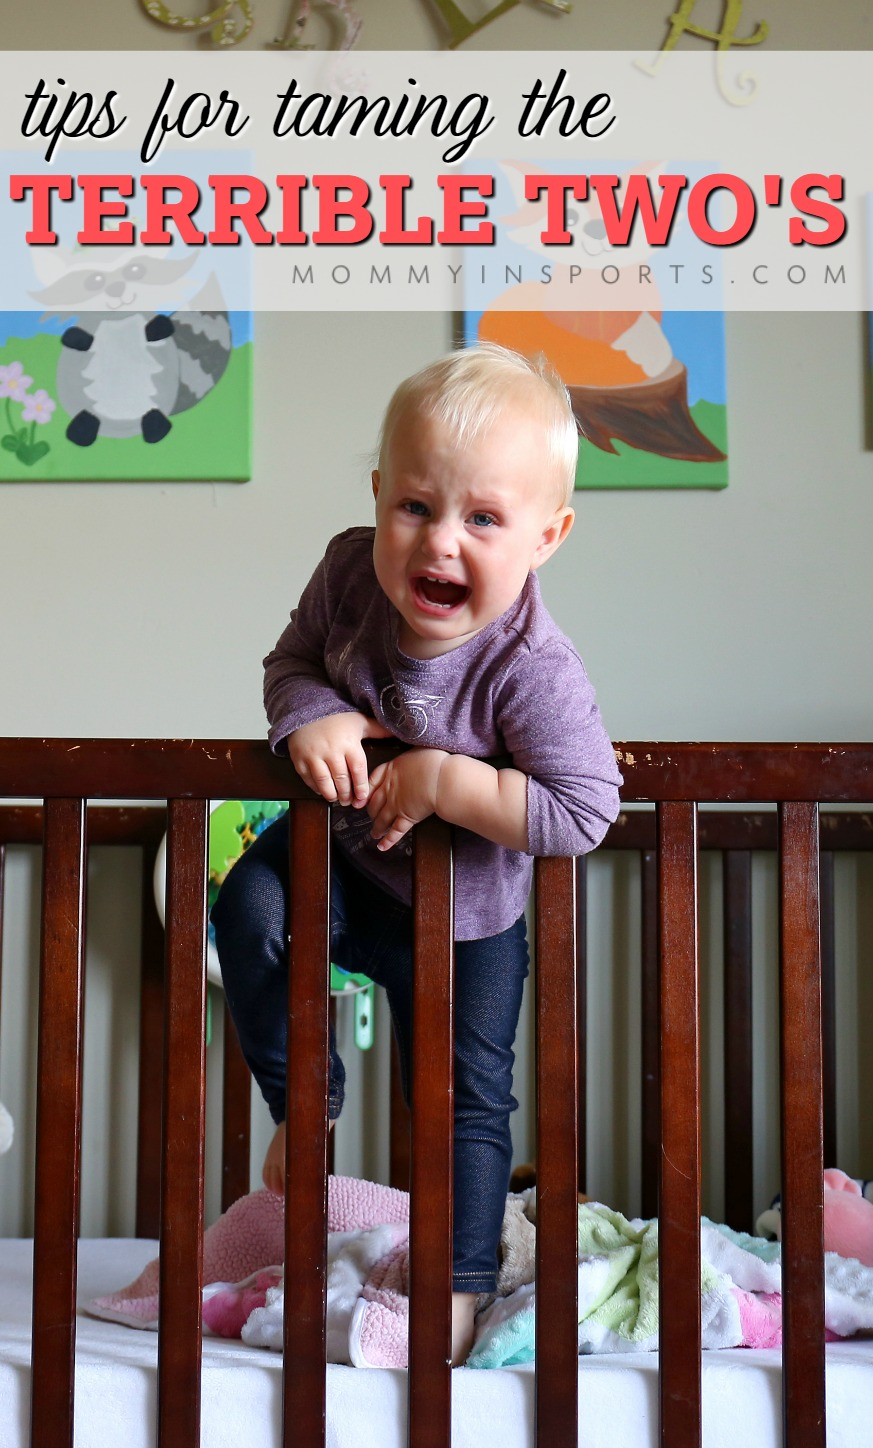 Do you struggle with your toddler? Tantrums, mealtimes, and naps...oh my! The Terrible Two's are hard, but you CAN tame them with these tips!